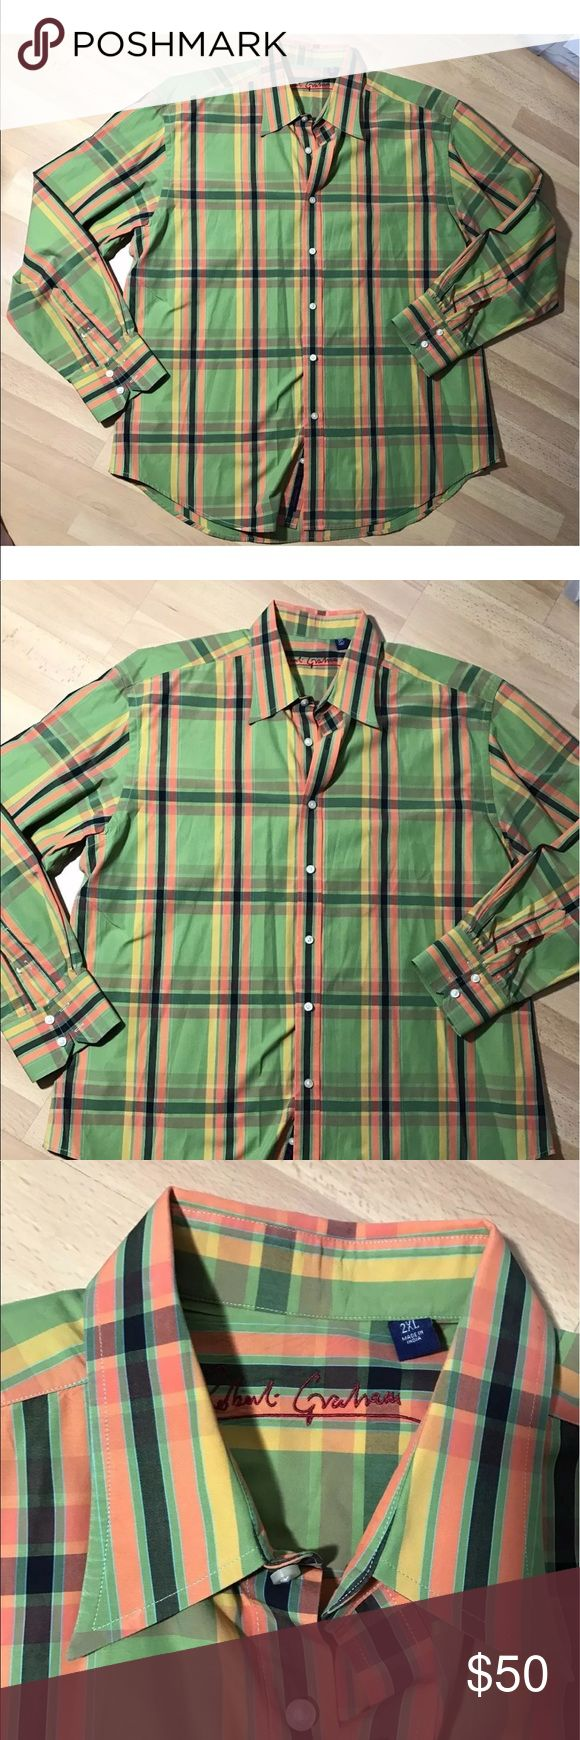 """Robert Graham 2xl xxl plaid button down shirt This listing is for a mens shirt  Brand: Robert Graham 100% authentic Size 2XL Plaid  Very Good, pre-owned condition. free from stains and rips and damage    Measurements (laying flat): Length - 33"""" (bottom of collar to bottom of hem)  Shoulder - 21.5"""" (seam to seam)  Sleeve - 27"""" (shoulder seam to end of cuff)  Chest - 26.5"""" (pit to pit across laying flat) Robert Graham Shirts Casual Button Down Shirts"""